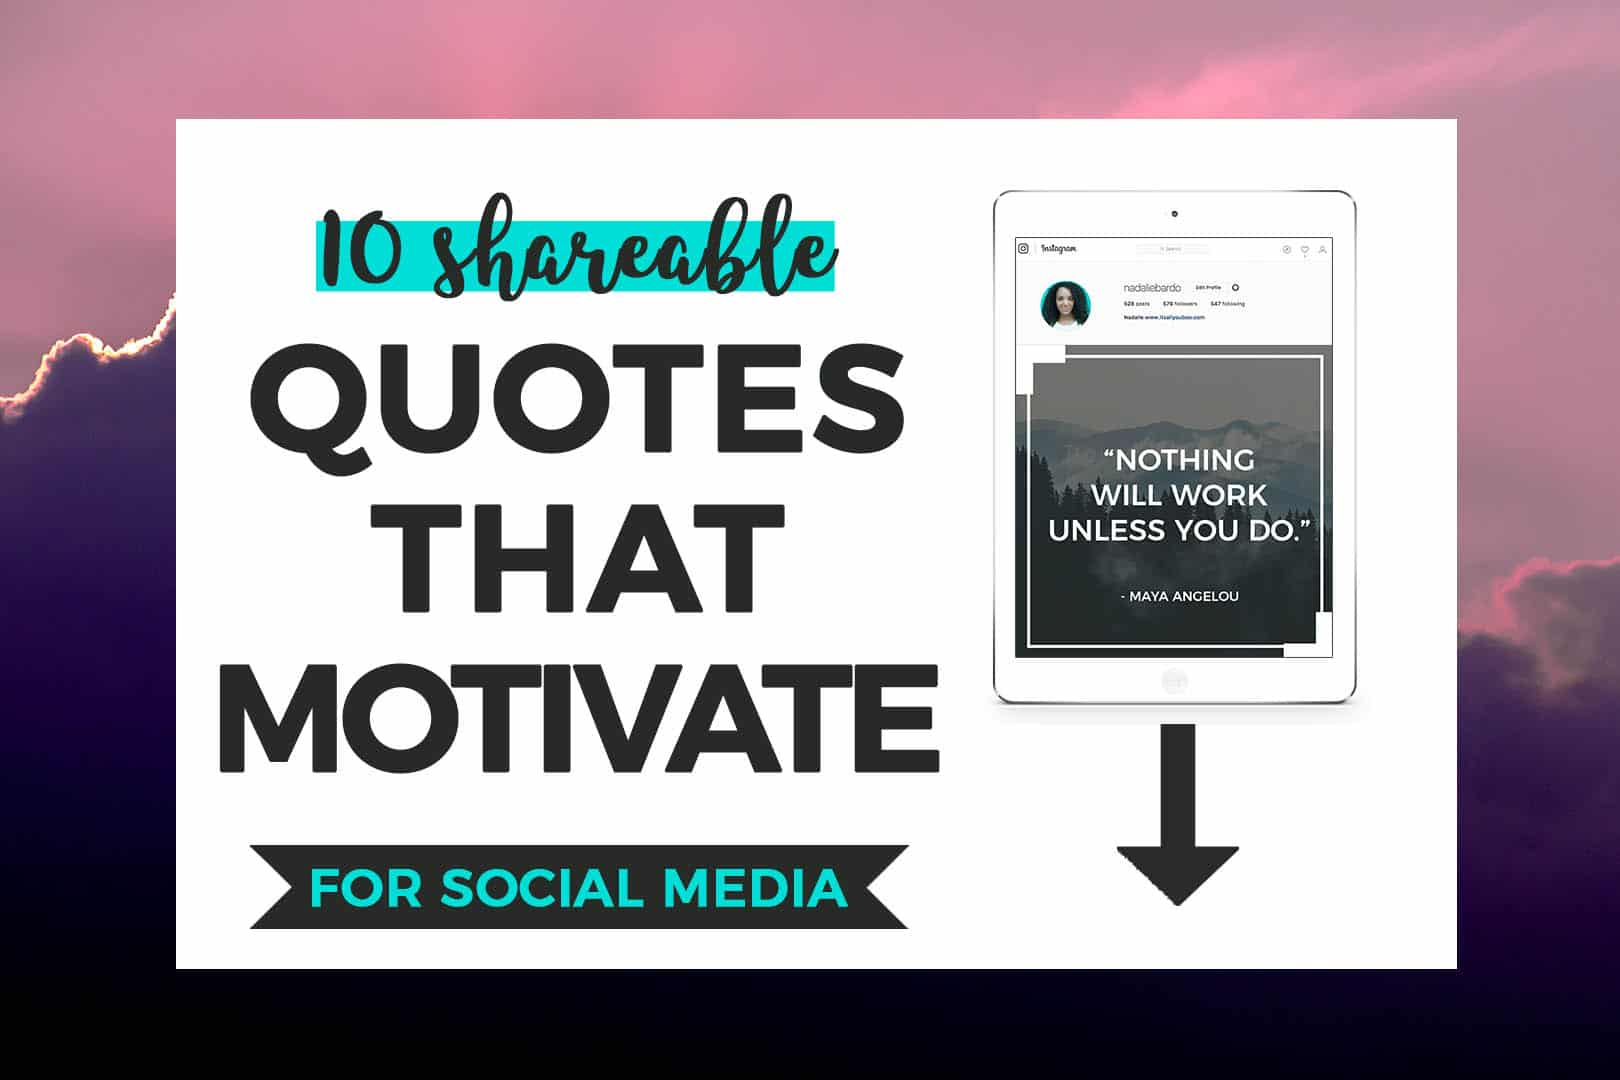 Download 10 Shareable Quotes that Motivate for Social Media + preview of quote on iPad